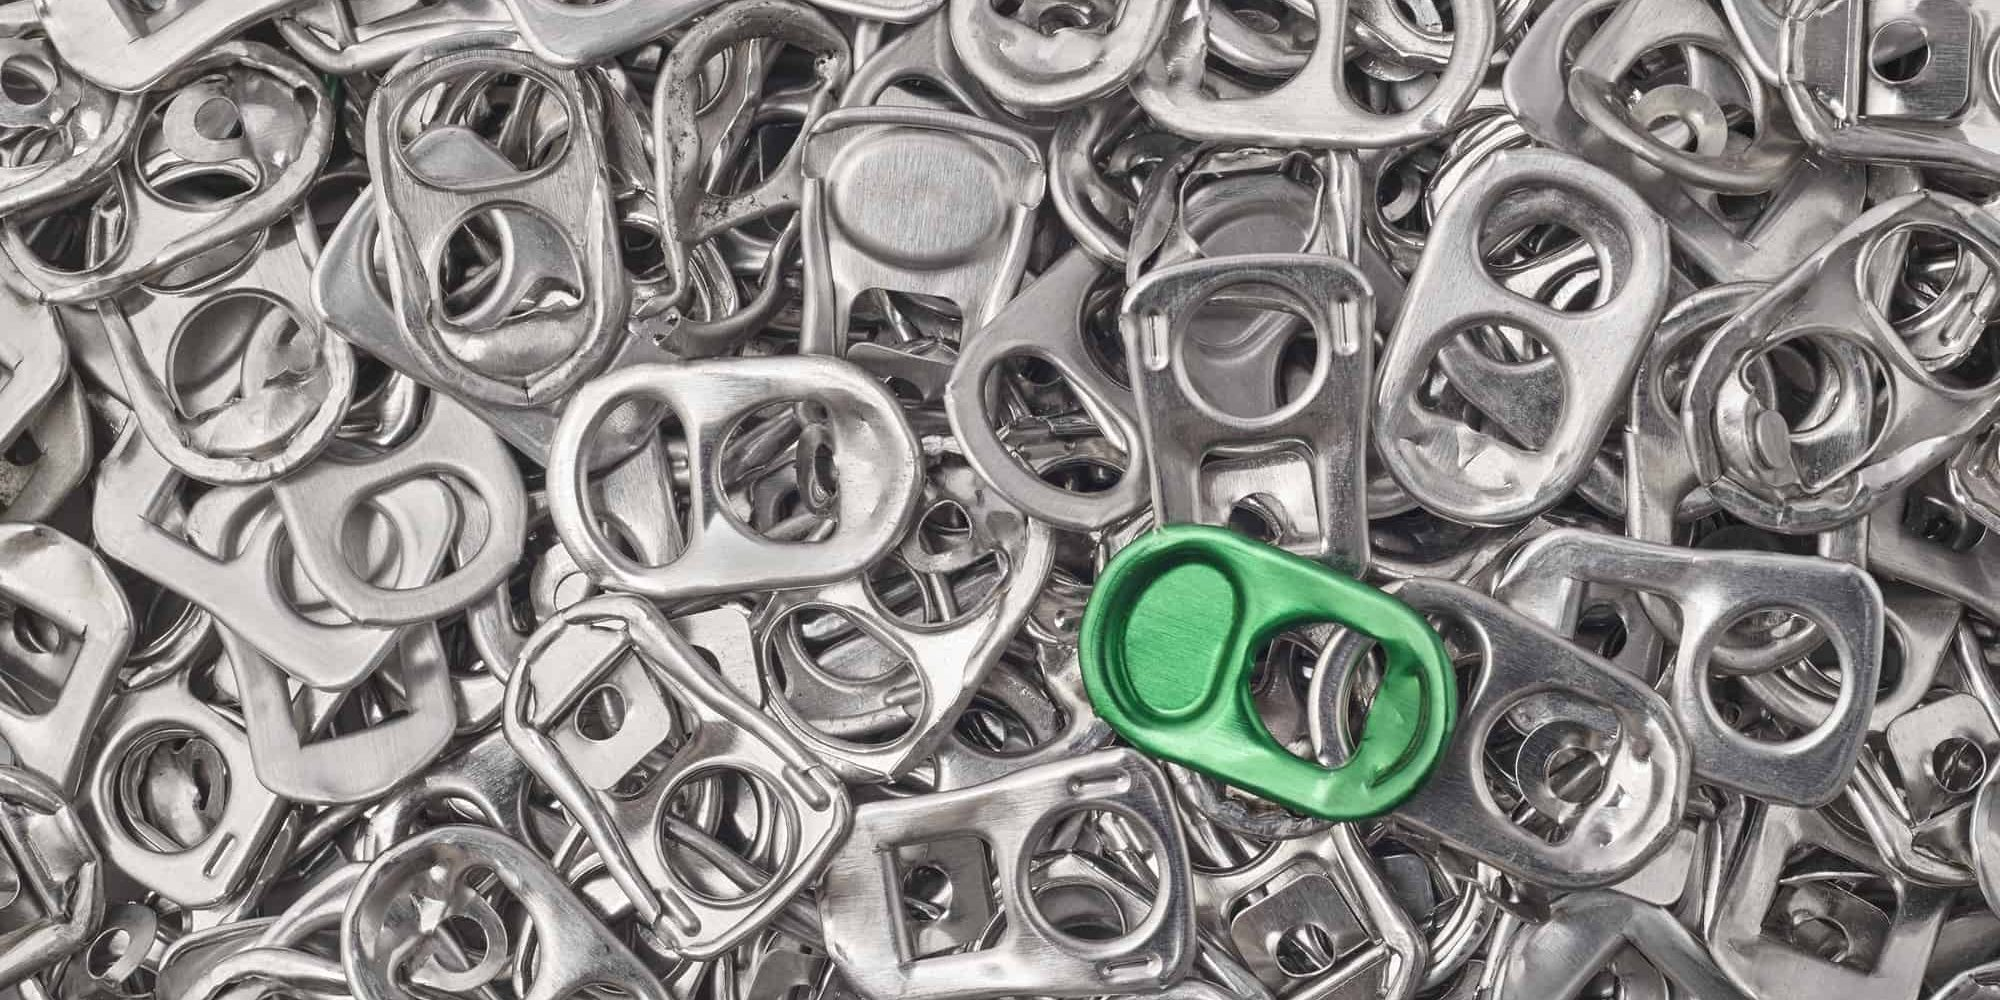 Recycling aluminum background with pull-tab pieces. Metallic waste. Horizontal